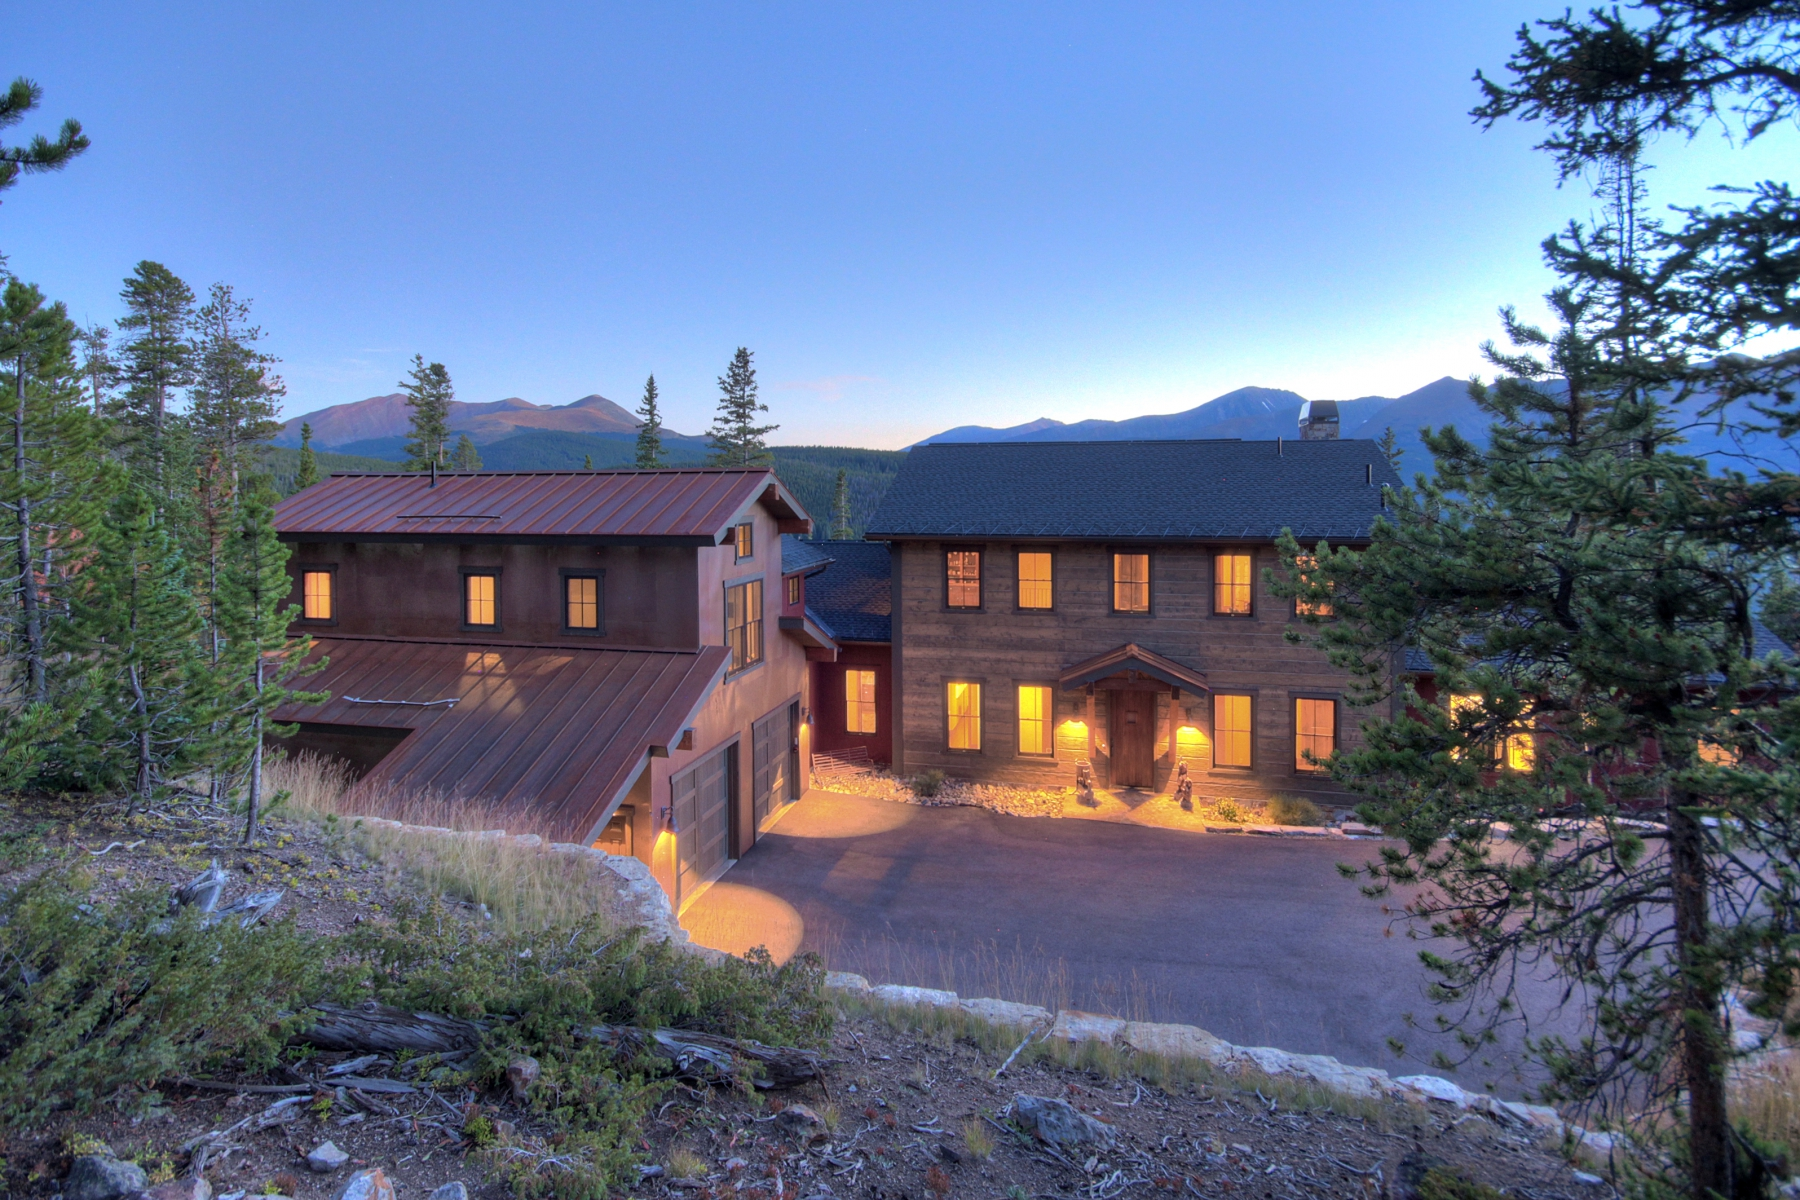 Single Family Home for Sale at 388 Miners View Road Breckenridge, Colorado 80424 United States